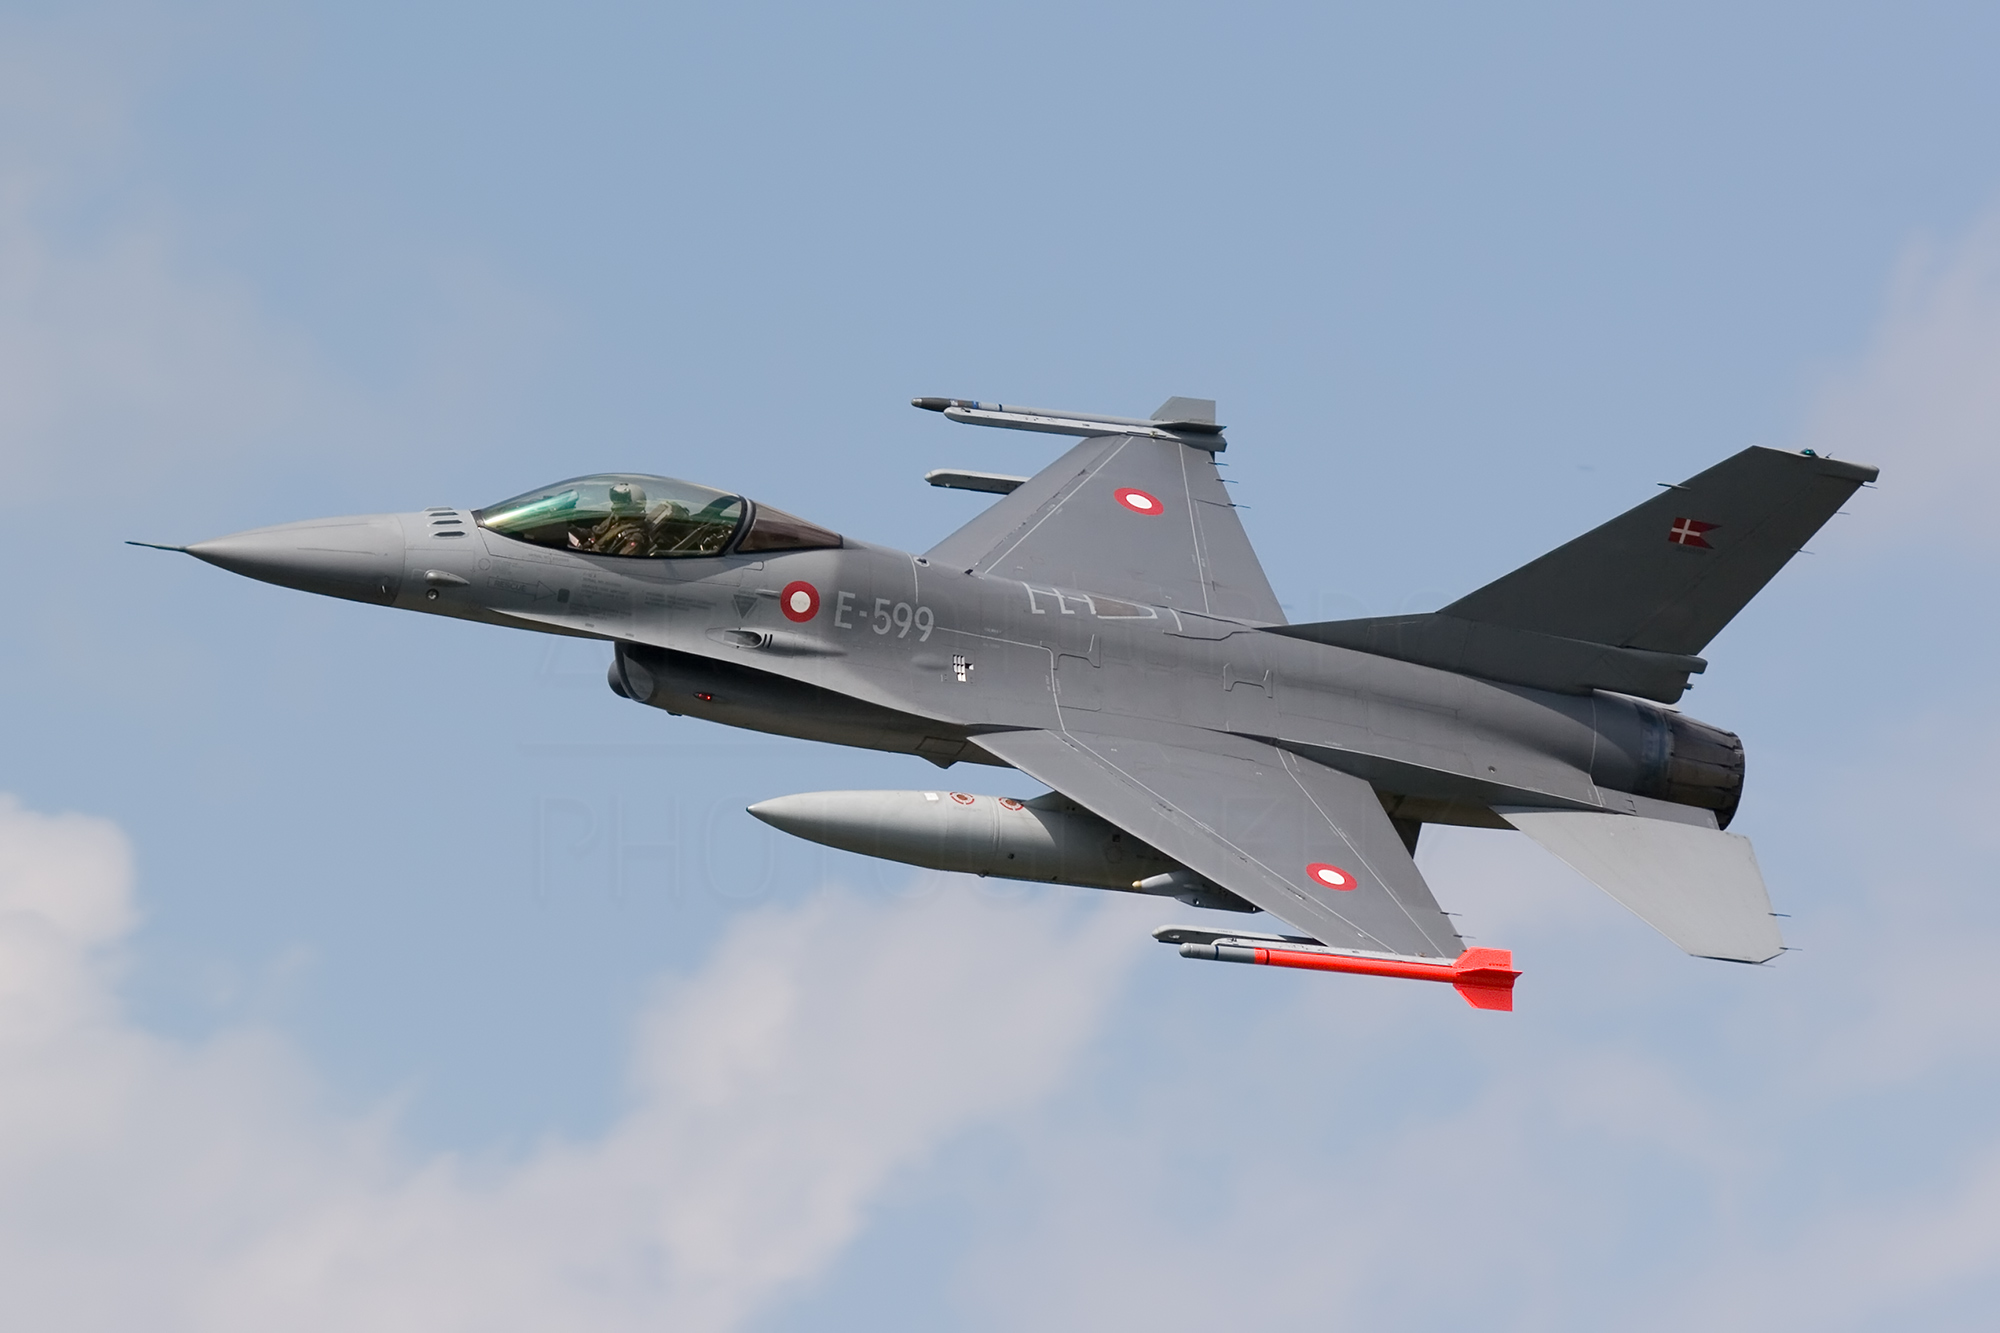 Airspotter.de 2007 Kleine Brogel Danish Air Force F-16BM Fighting-Falcom